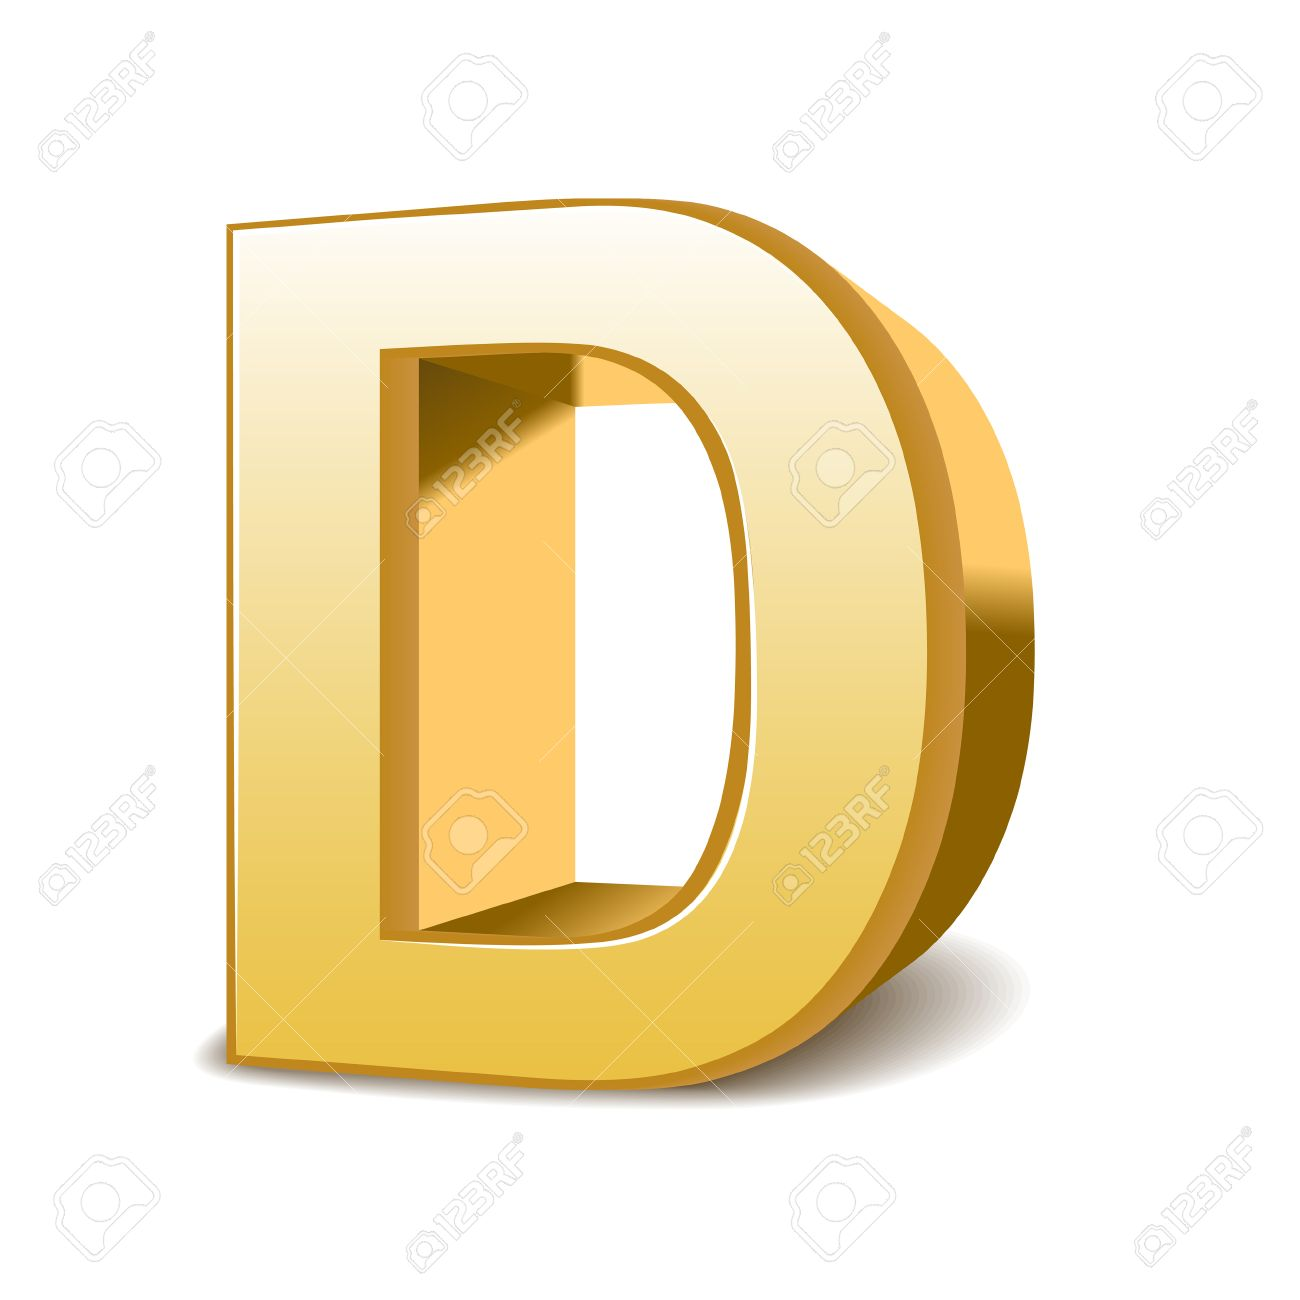 3d Golden Letter D Isolated White Background Royalty Free Cliparts